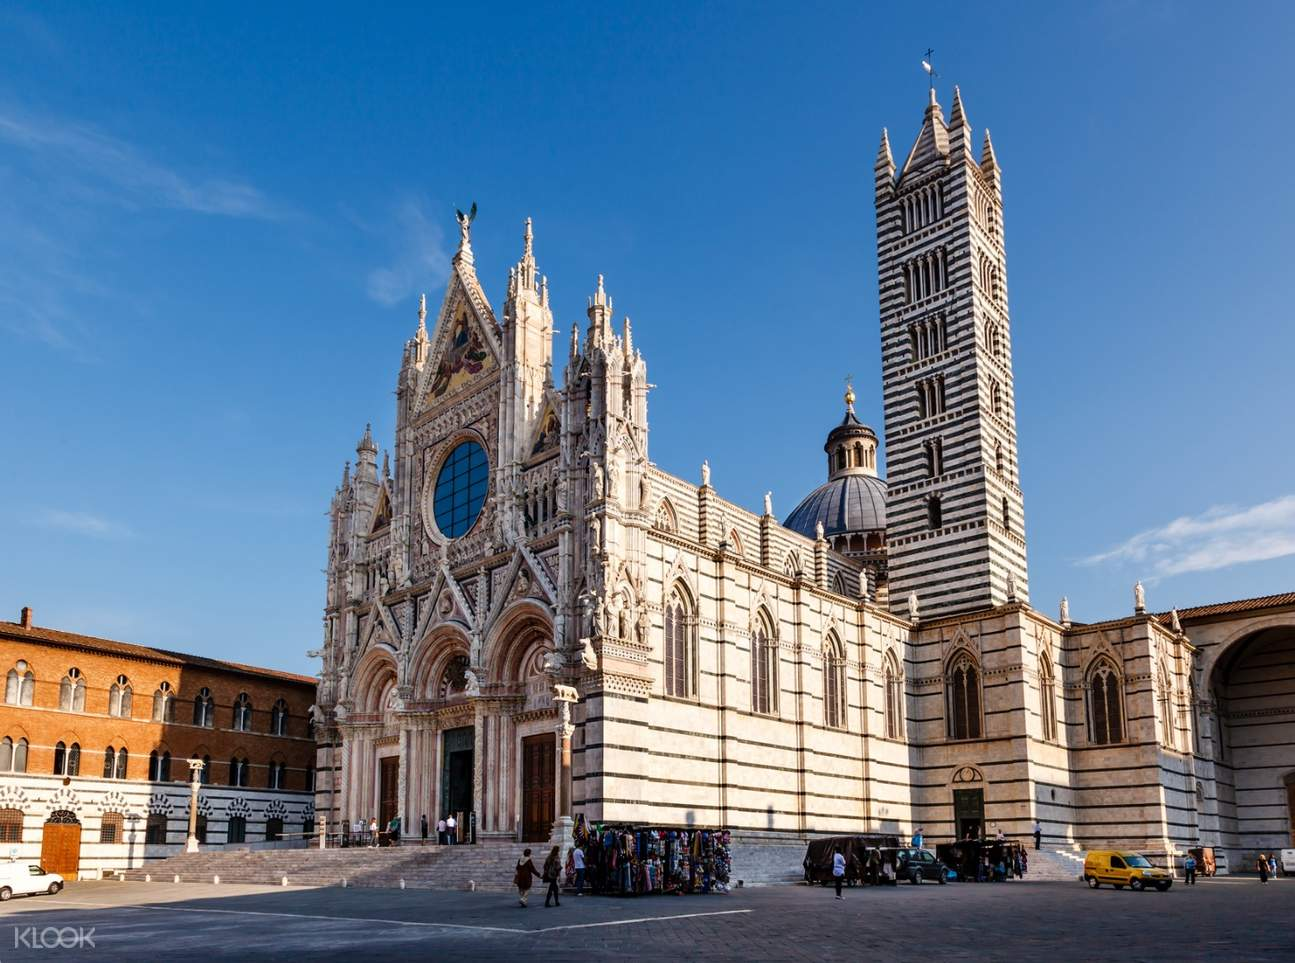 sienna cathedral